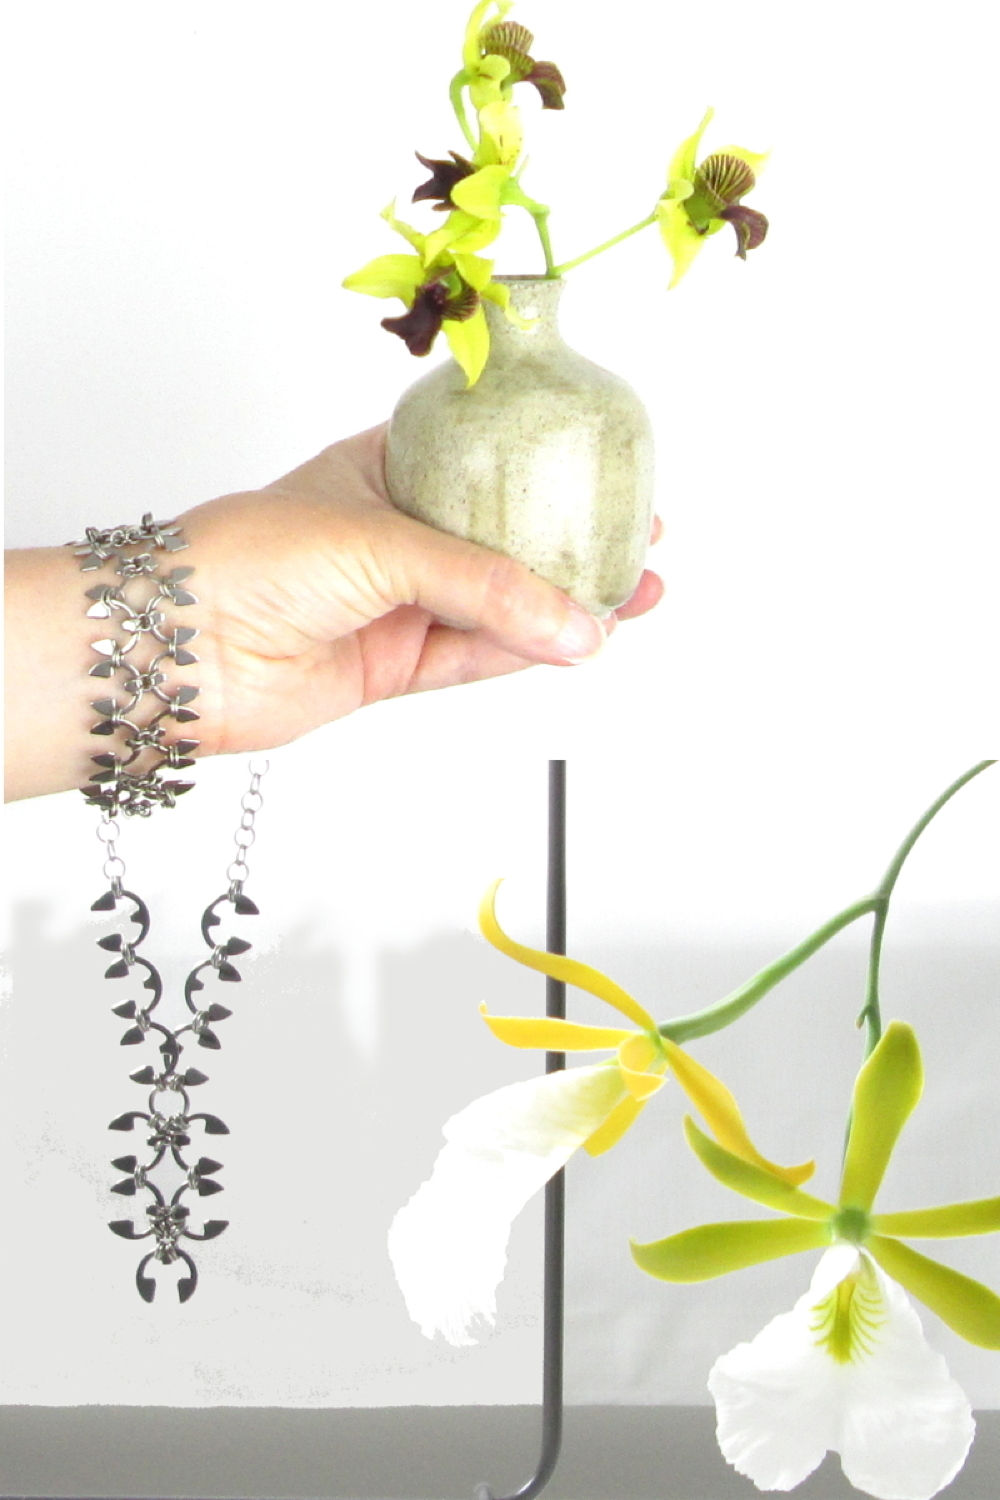 Compiled image: a hand holding a ceramic bud vase of green orchids wears Wraptillion's Wisteria Bracelet, above the Delicate Wisteria Necklace on a jewelry stand, next to another blooming orchid.